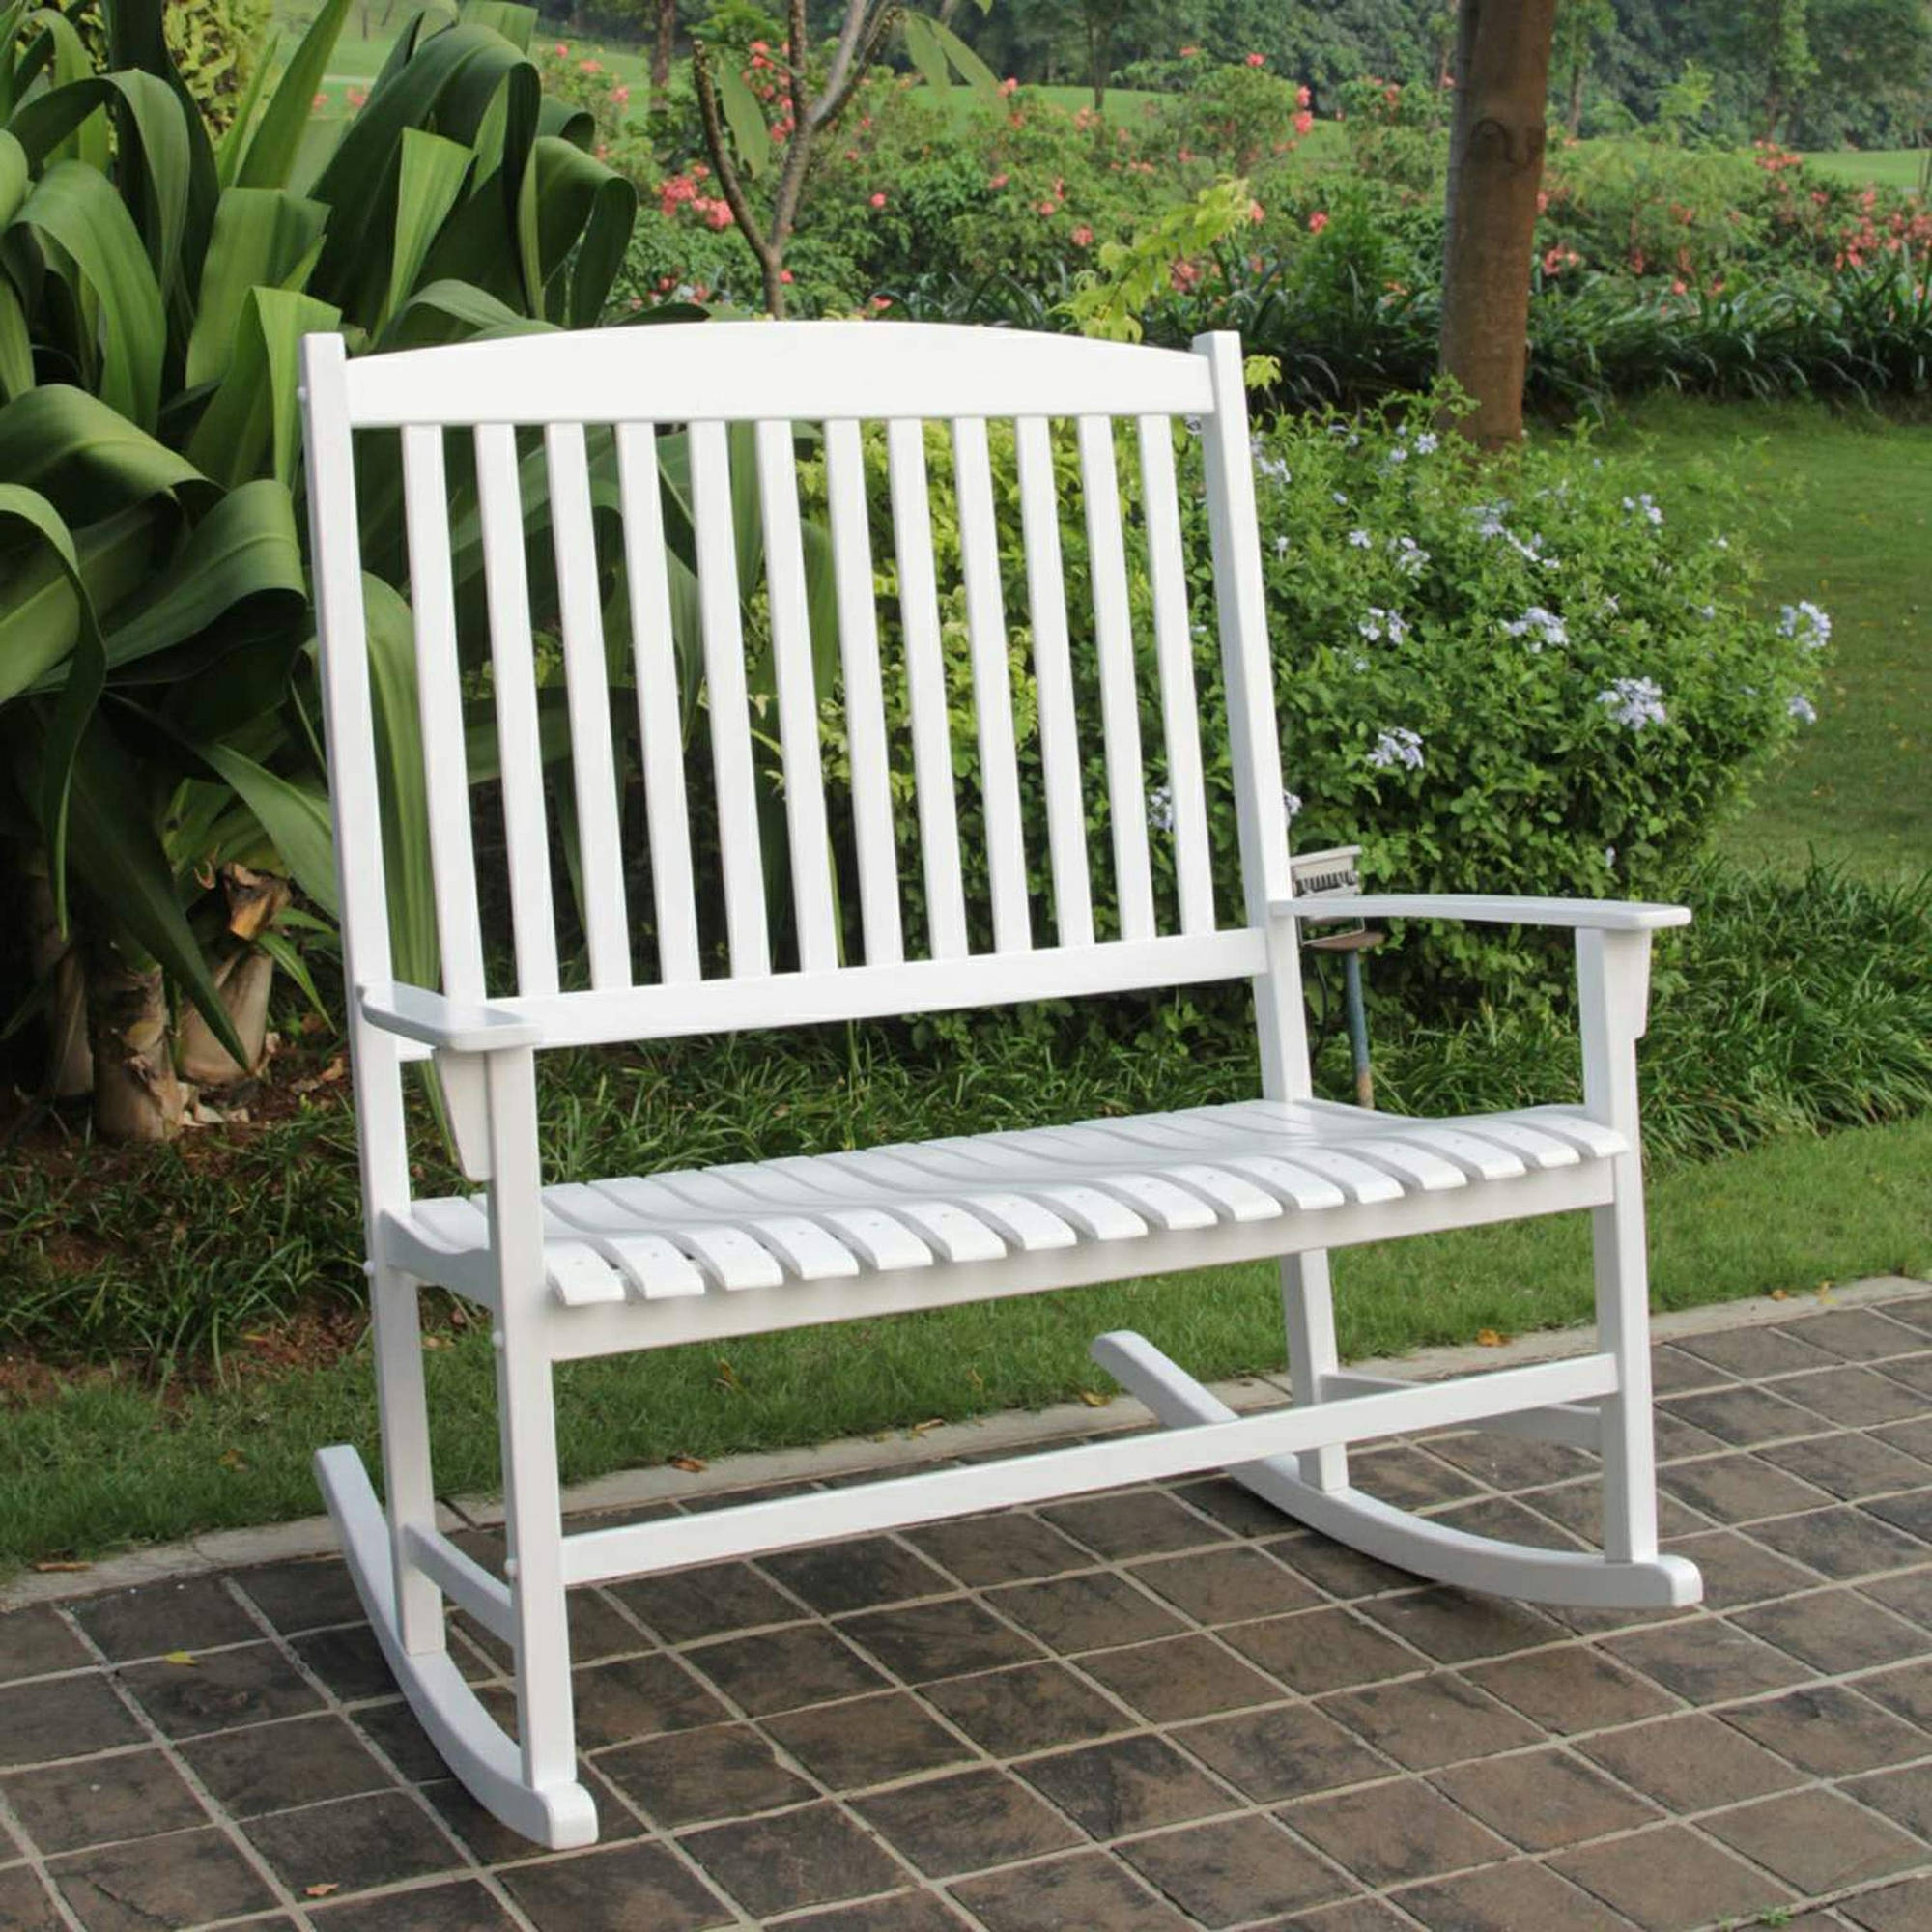 Widely Used Patio Loveseat White Hardwood Outdoor Rocking Chair For 2 Regarding White Patio Rocking Chairs (View 4 of 15)